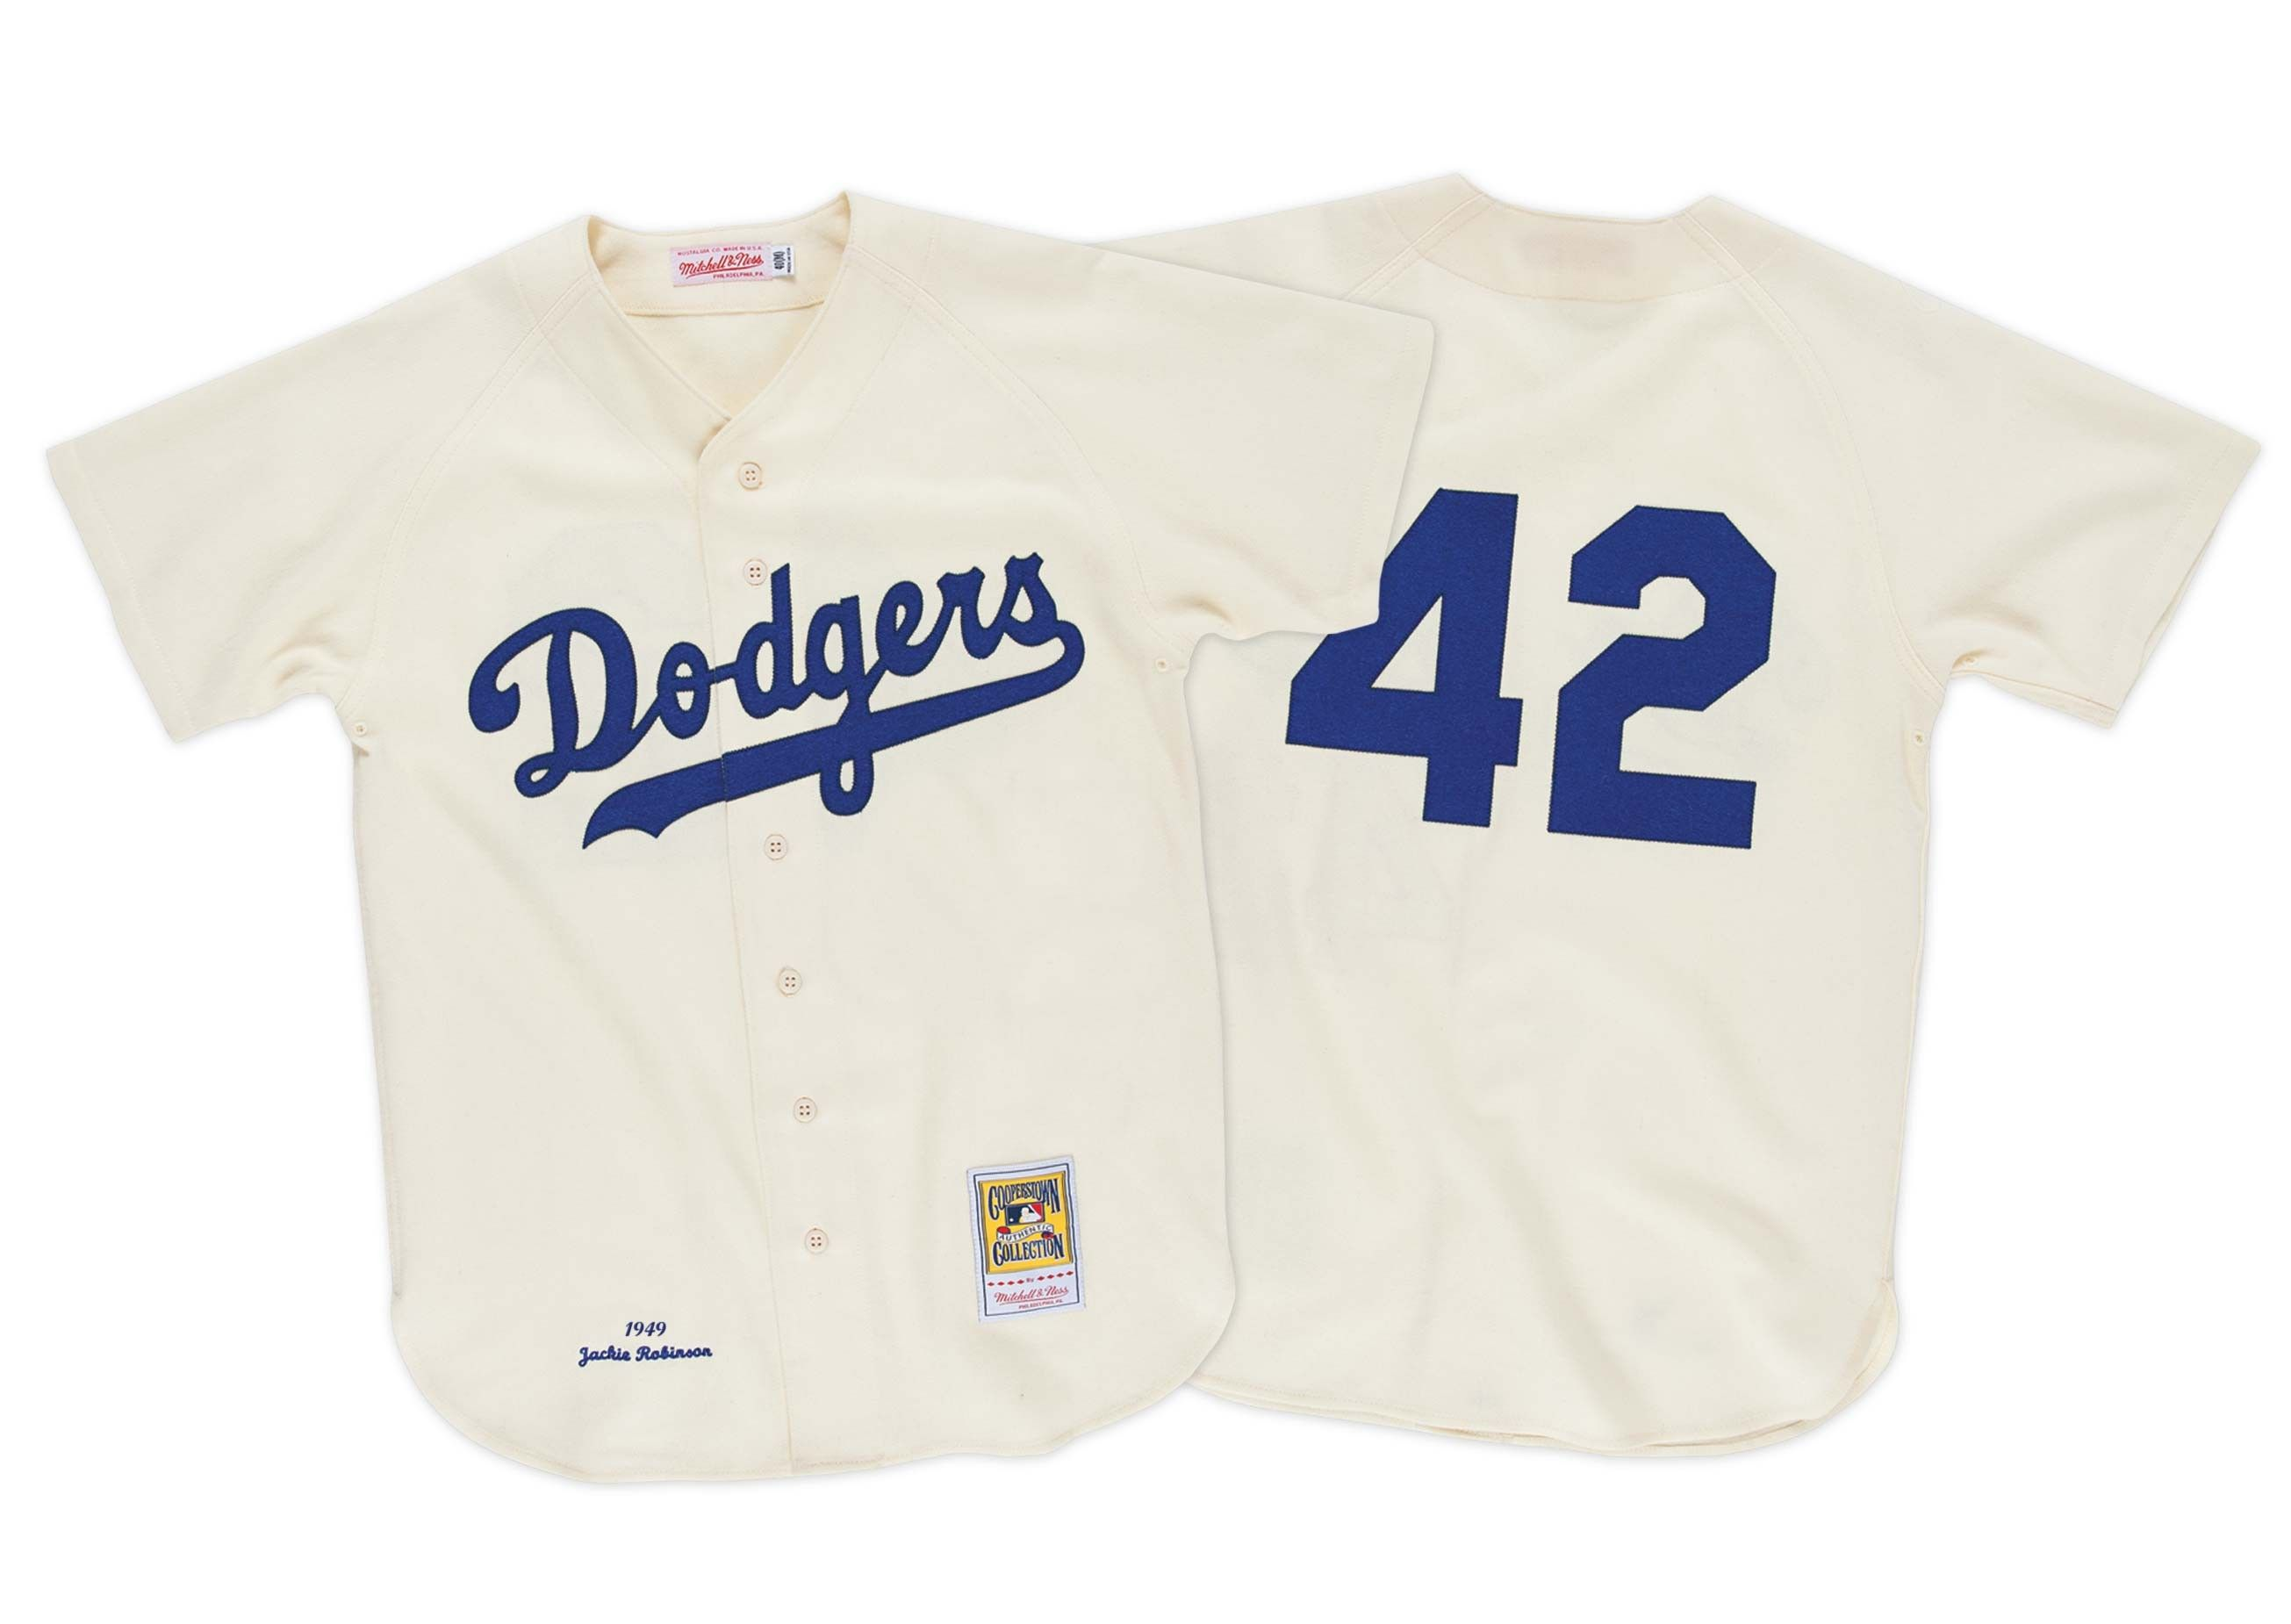 205ffde2b90 ... throwback apparel collection featuring authentic jerseys and team gear.  Brooklyn Dodgers Jackie Robinson